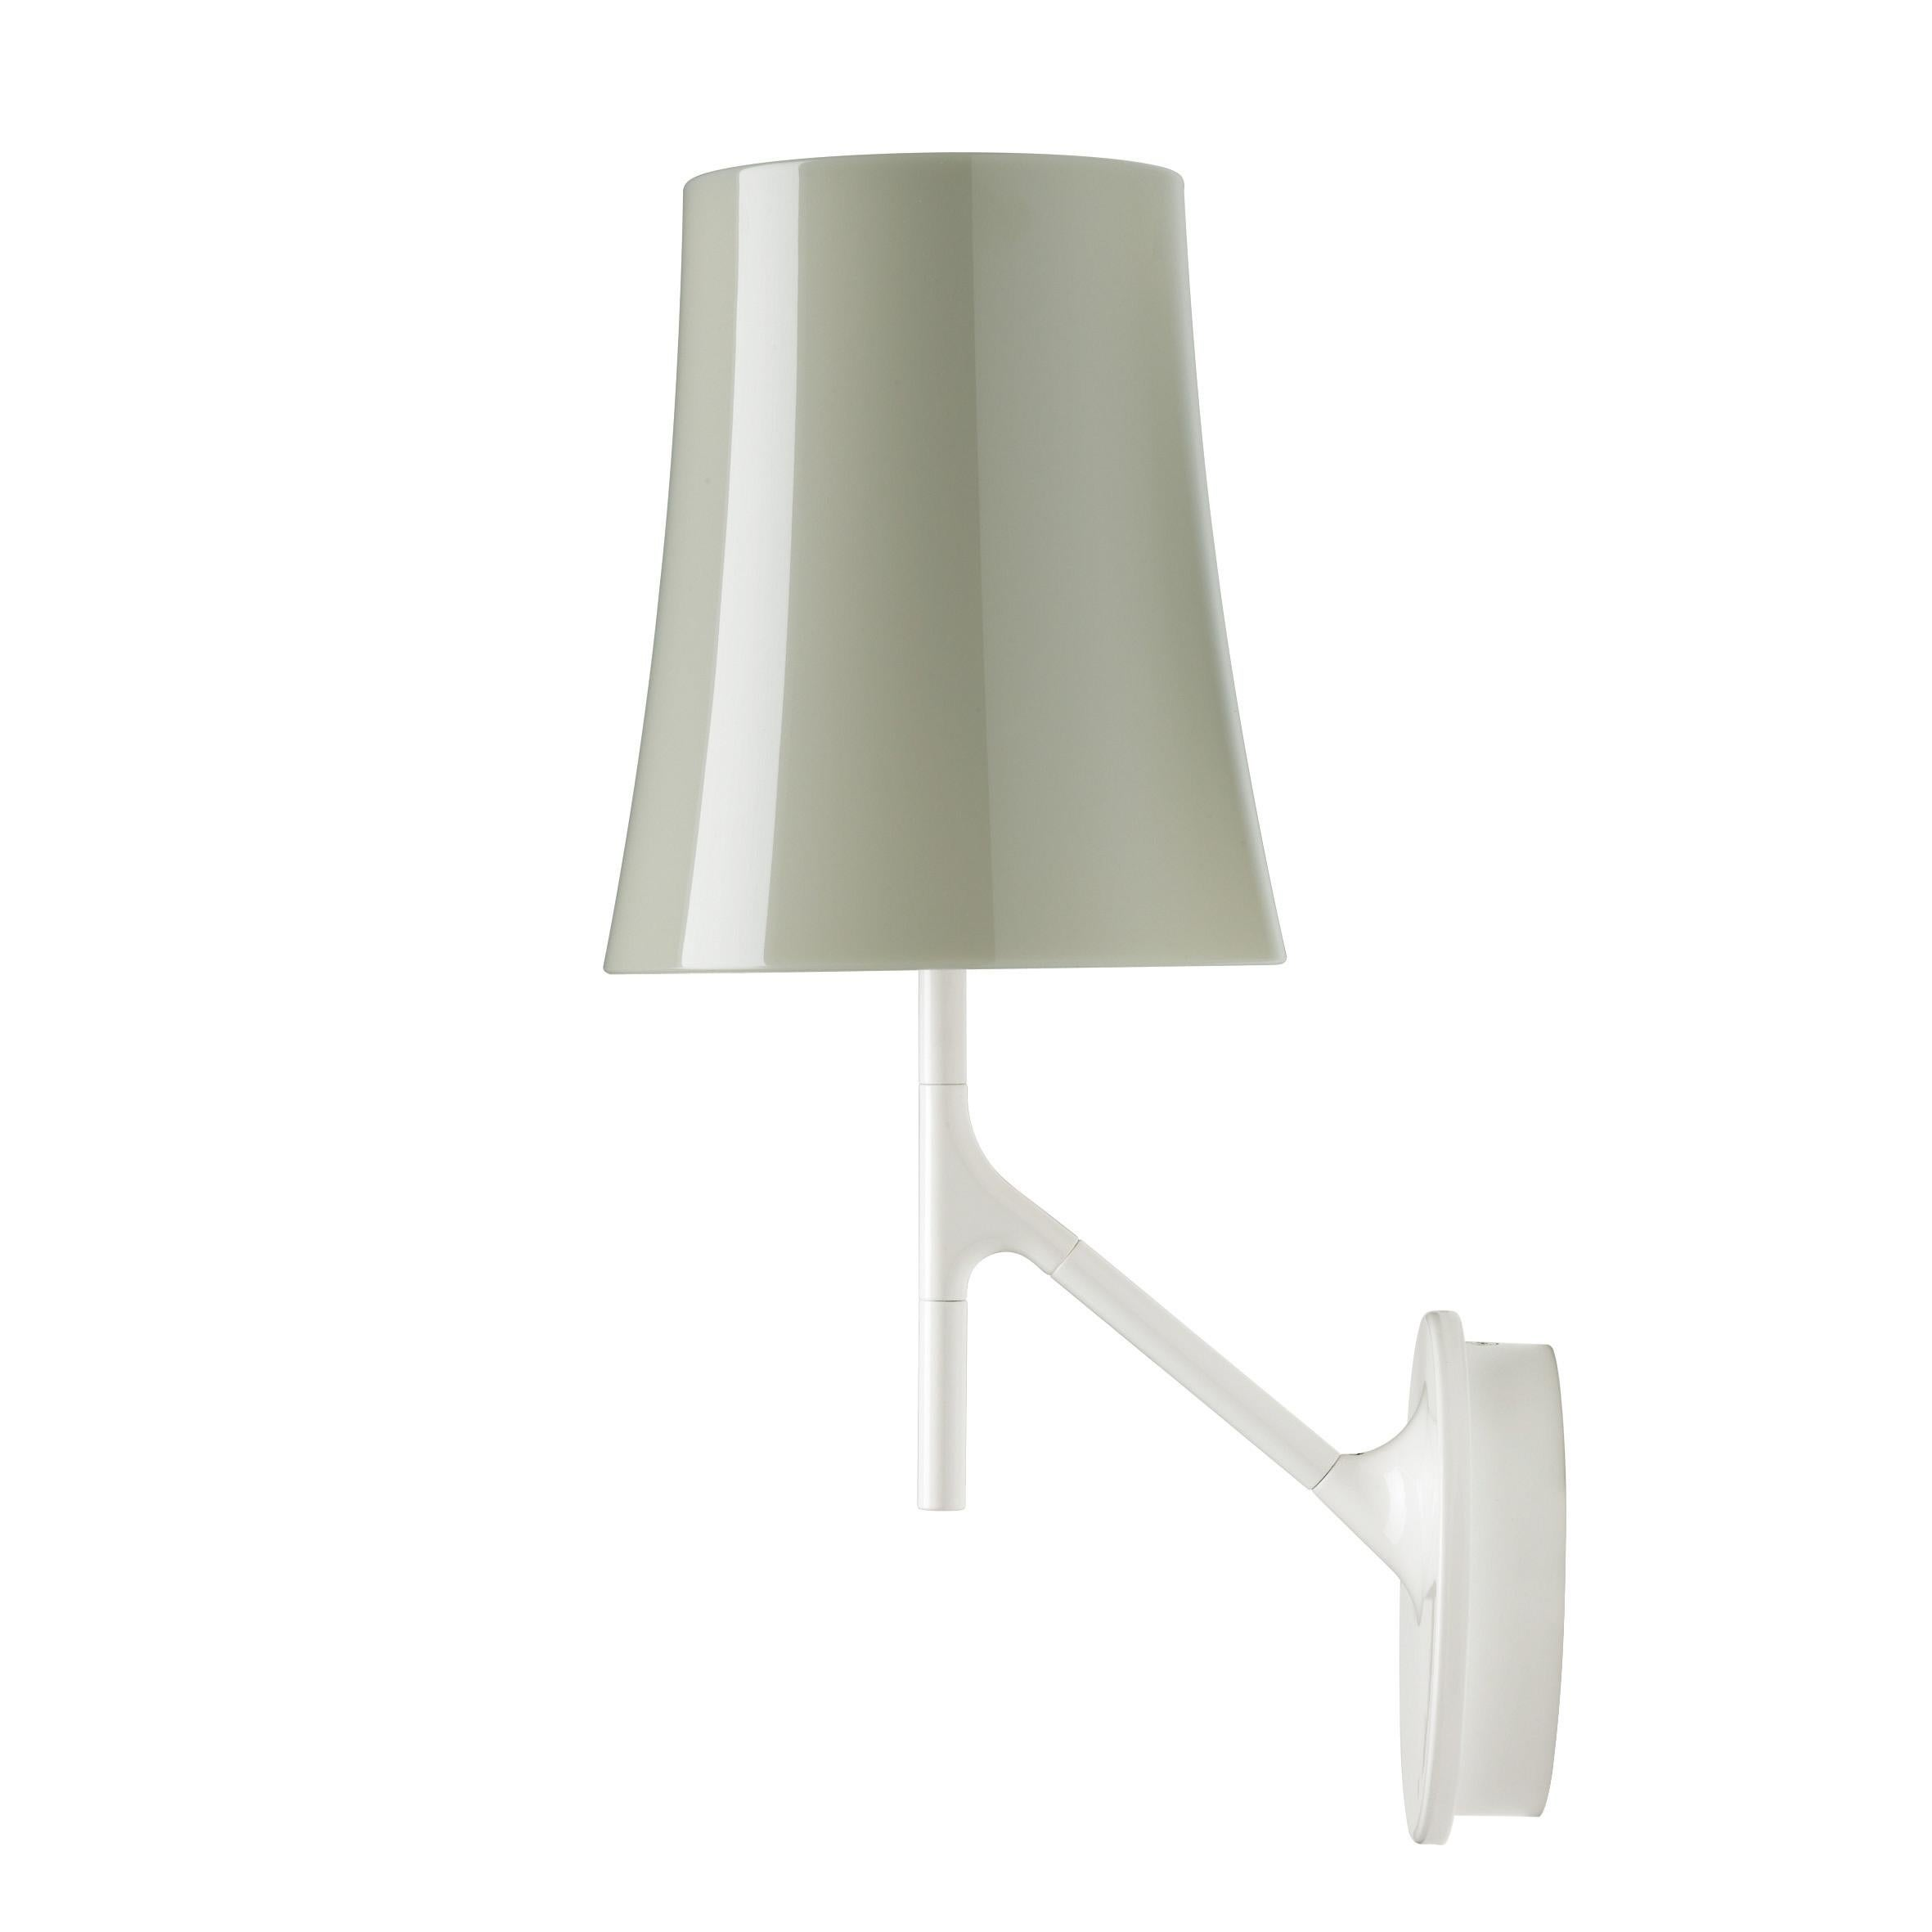 Foscarini Birdie Wall Lamp in Grey by Ludovica and Roberto Palomba